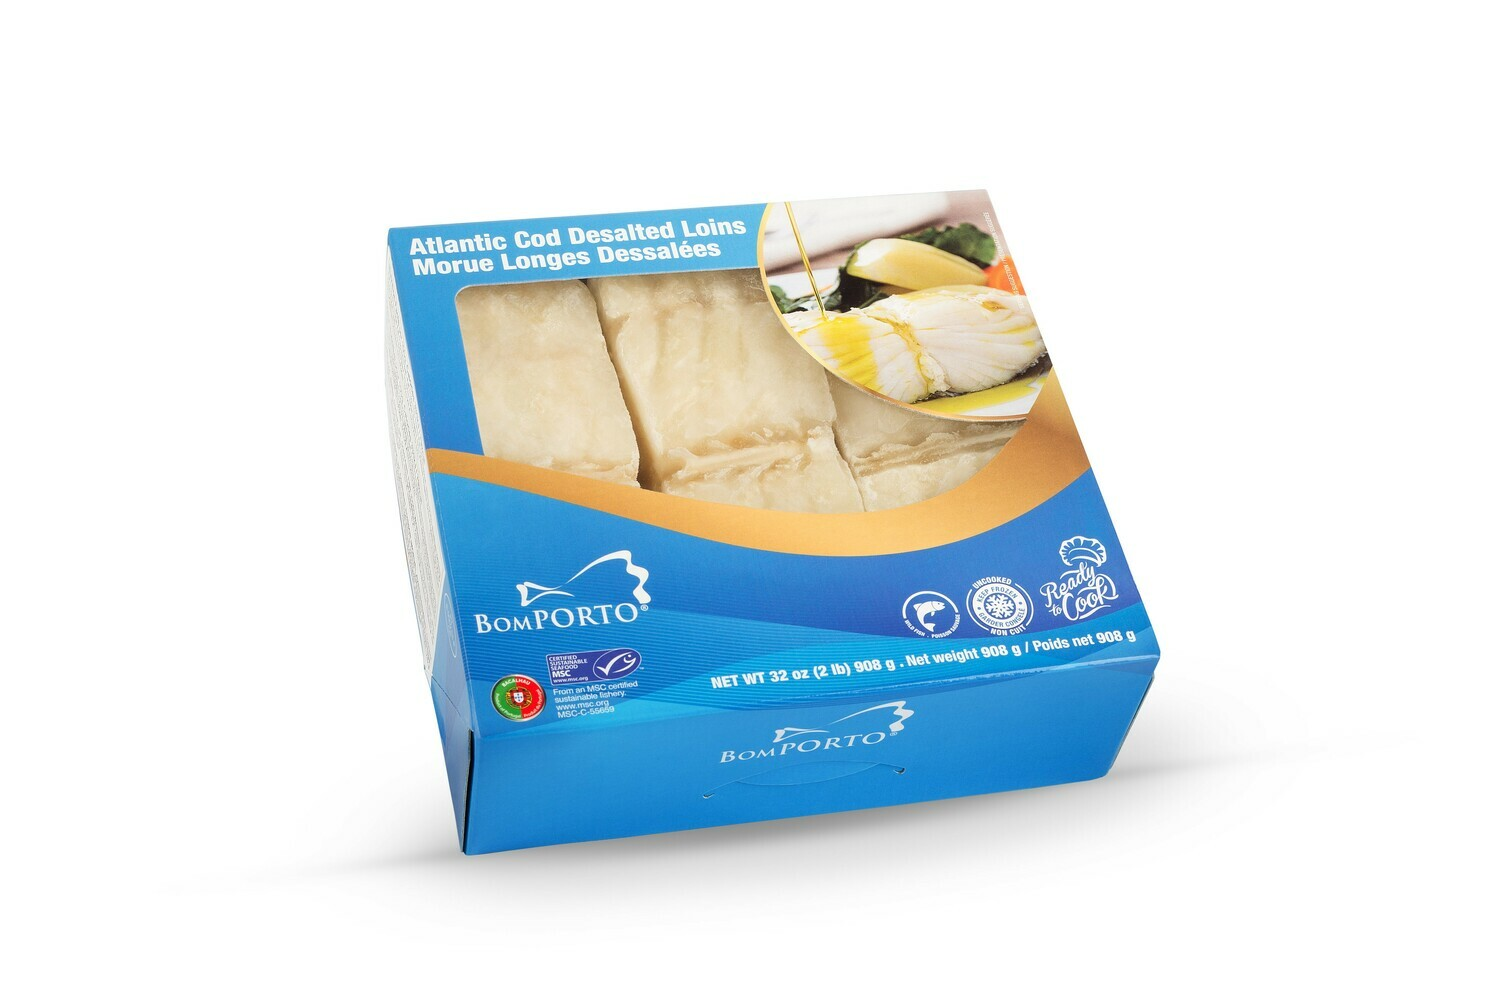 Desalted Bacalhau BomPorto (Norway) -  6 Center Loins (Frozen) (4 lbs) - (Ships Separately - Ship Next Day)